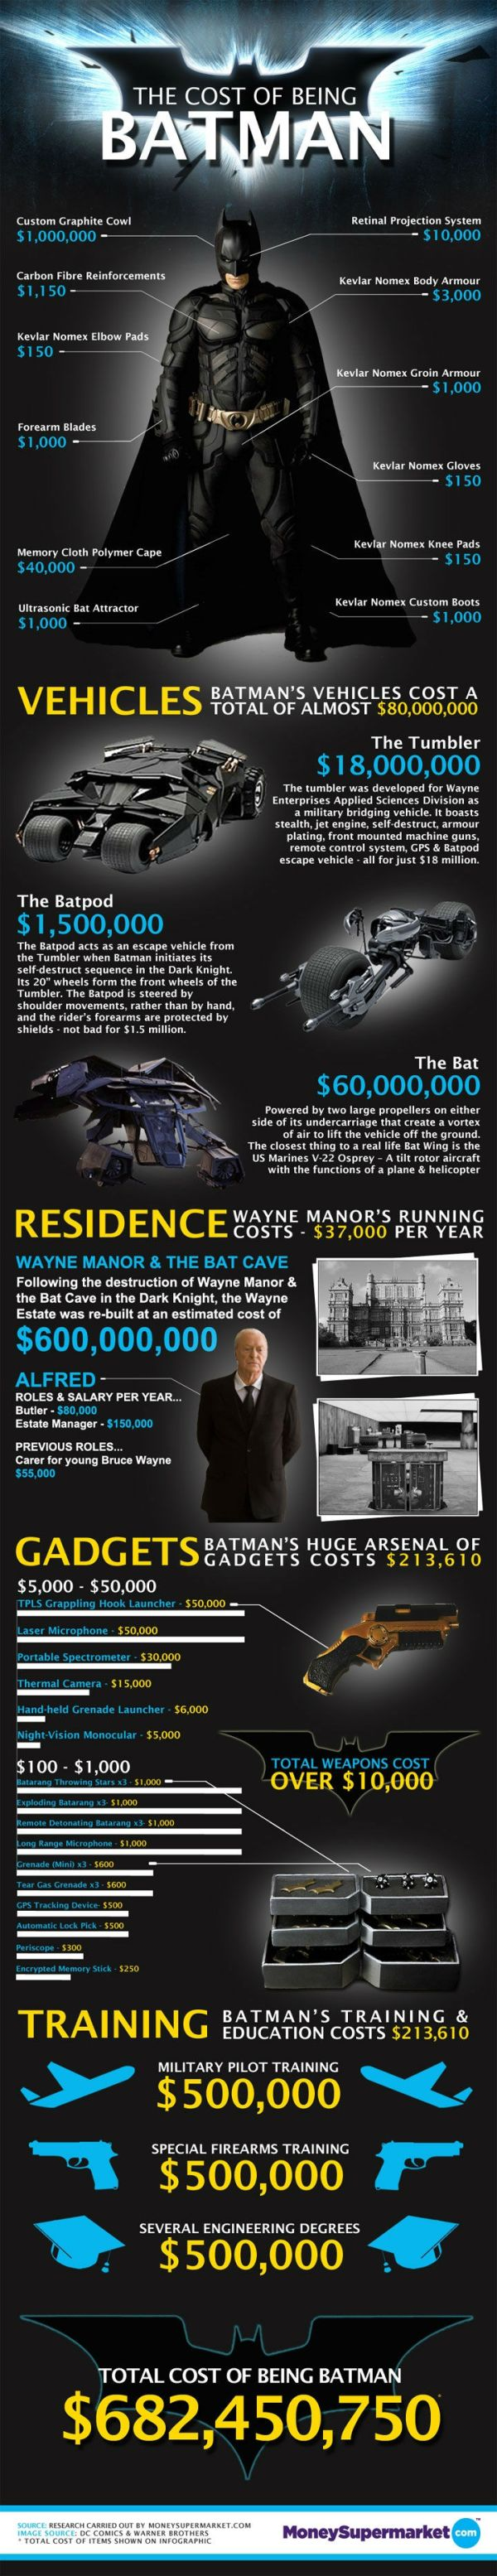 Infographic: How Much Would It Cost To Be Batman? - DesignTAXI.com